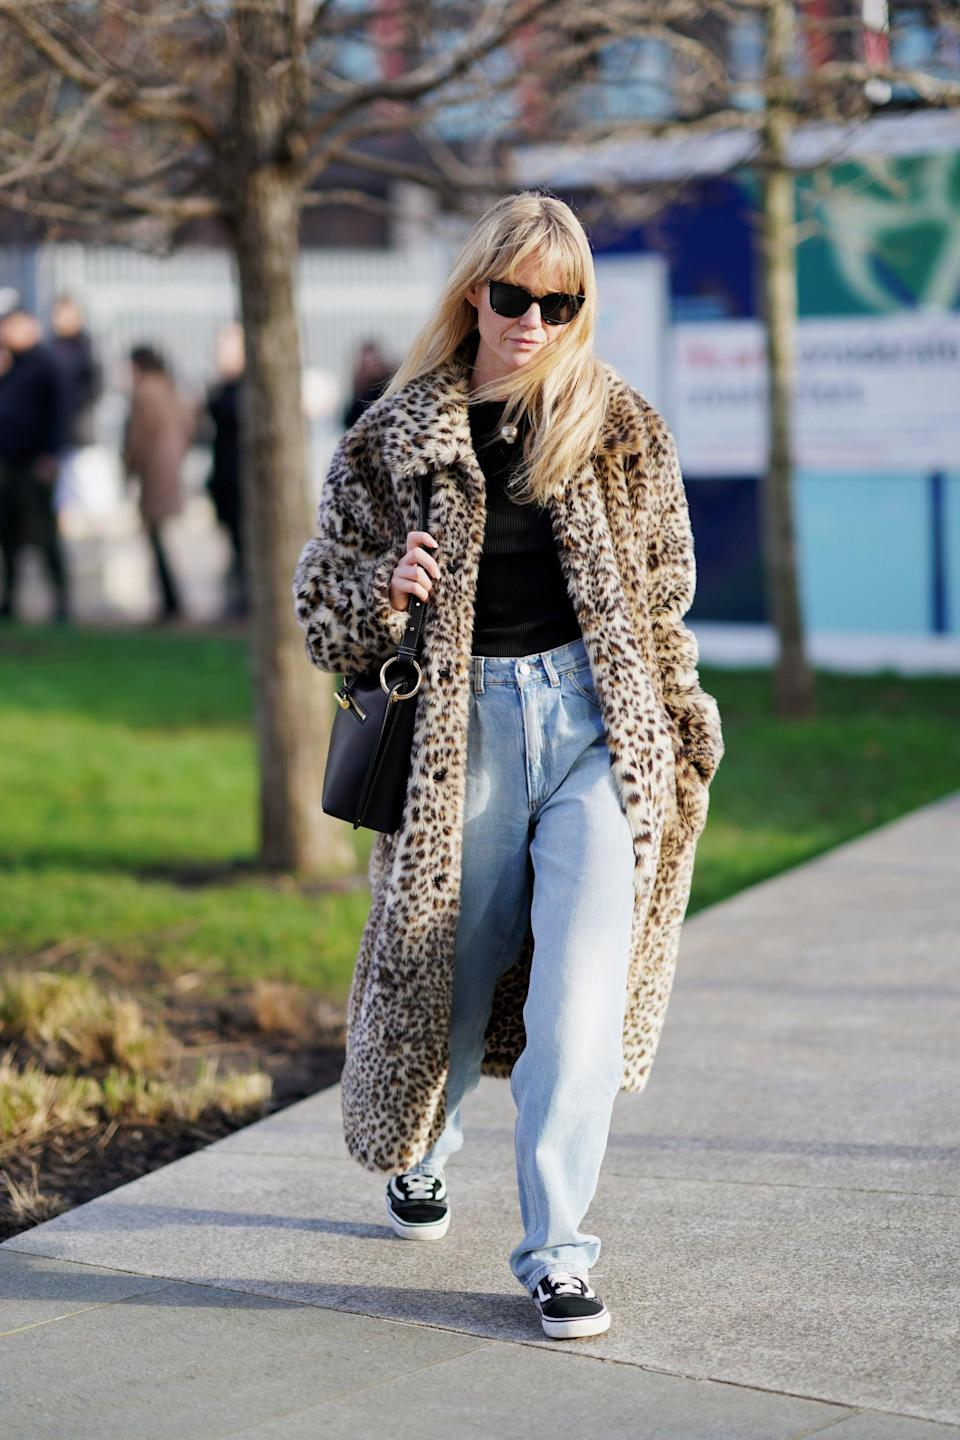 <p>Go for a skater-chic look by pairing baggy jeans with Vans sneakers. A t-shirt, an animal-print coat, and sunglasses are perfect for a fresh and low-key finish. </p>